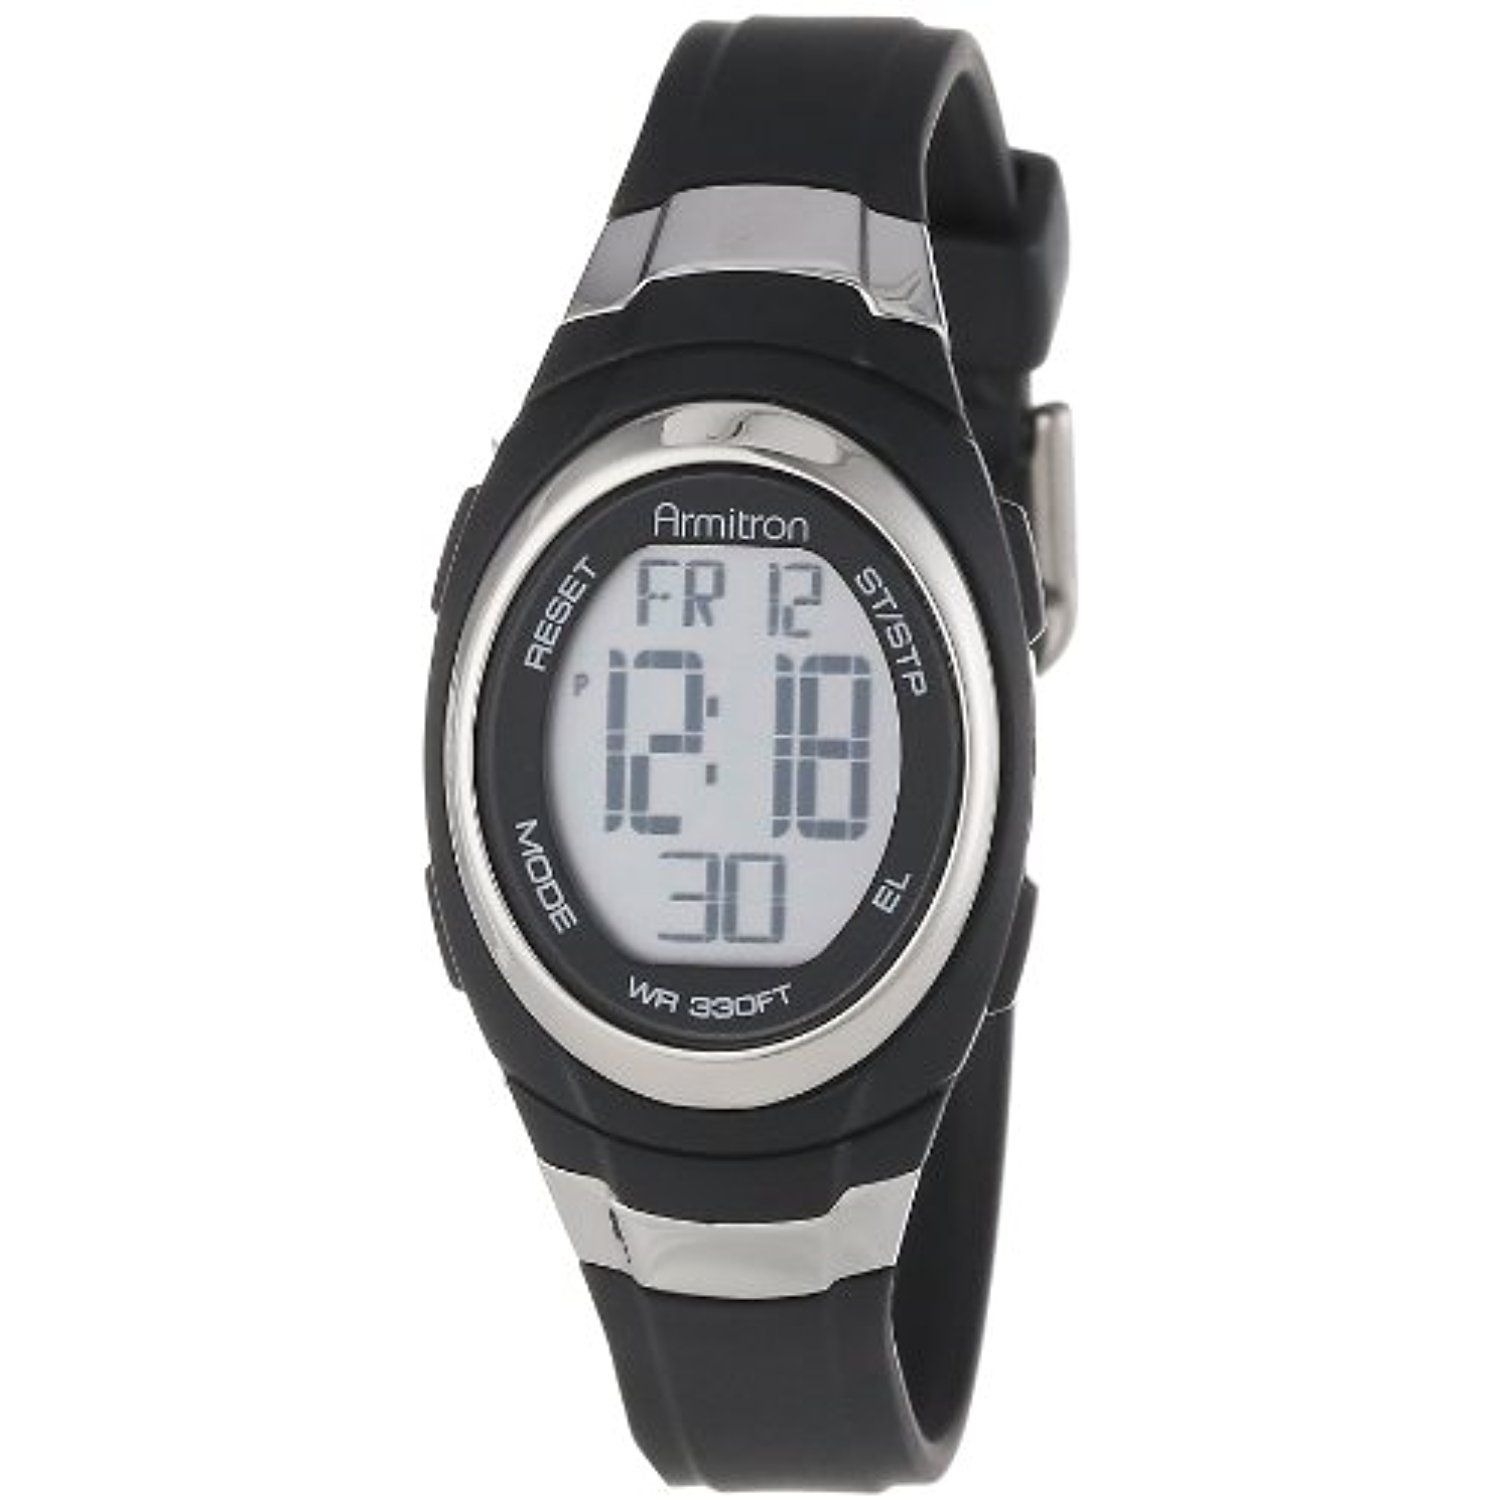 Sport Unisex 45 7034blk Stainless Steel Accented Black Resin Strap Chronograph Digital Watch To View Further For This Ite Armitron Amazon Watches Chronograph